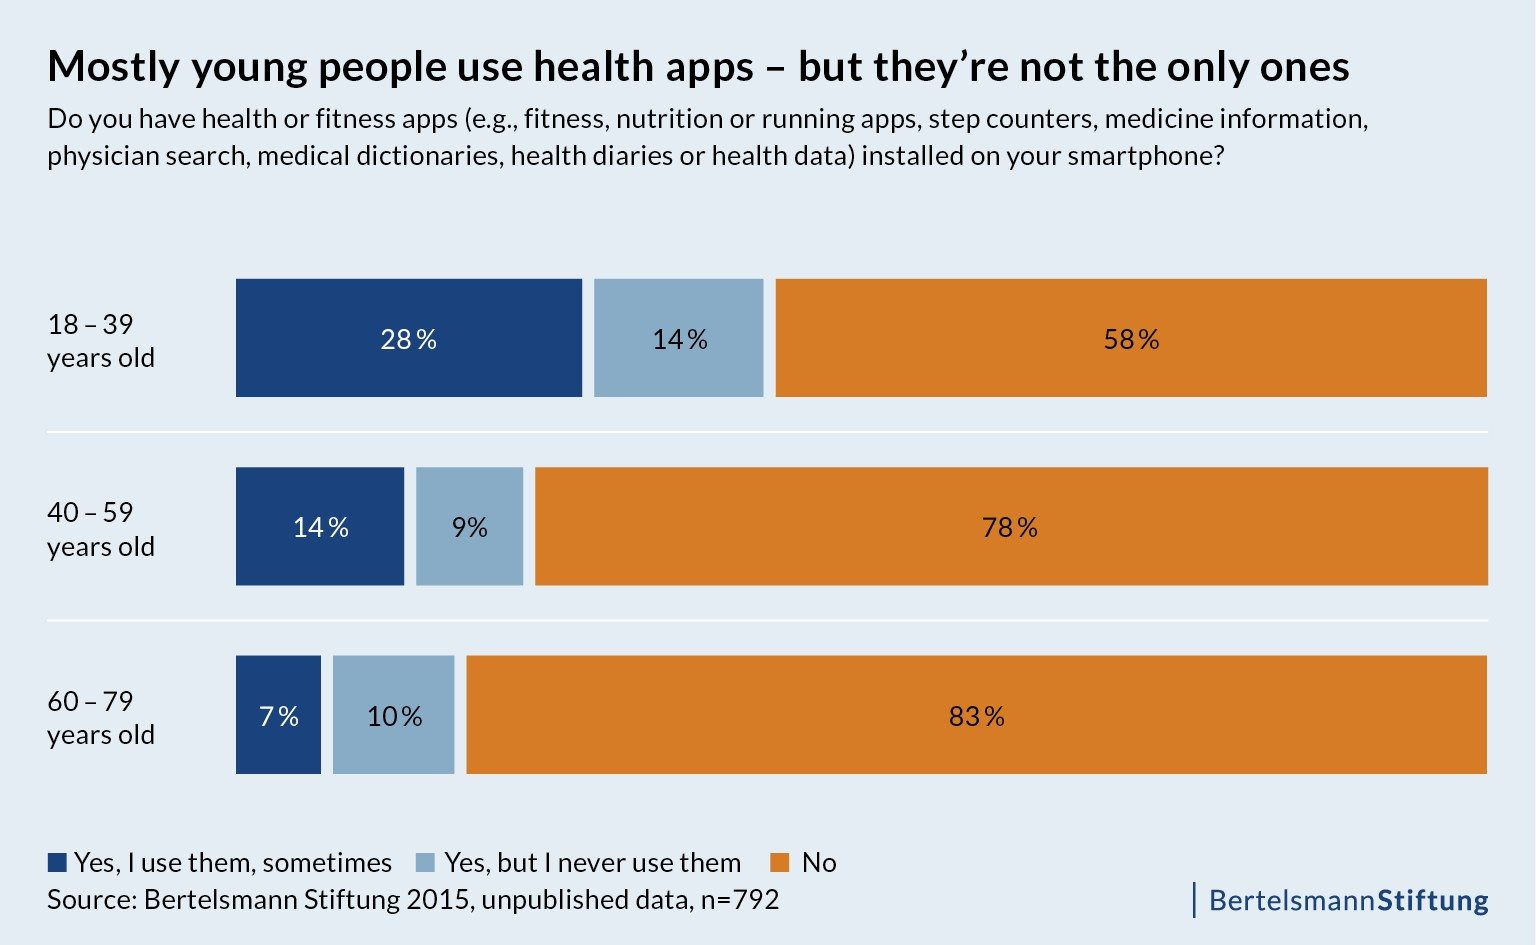 Mostly young people use health apps - but they're not the only ones